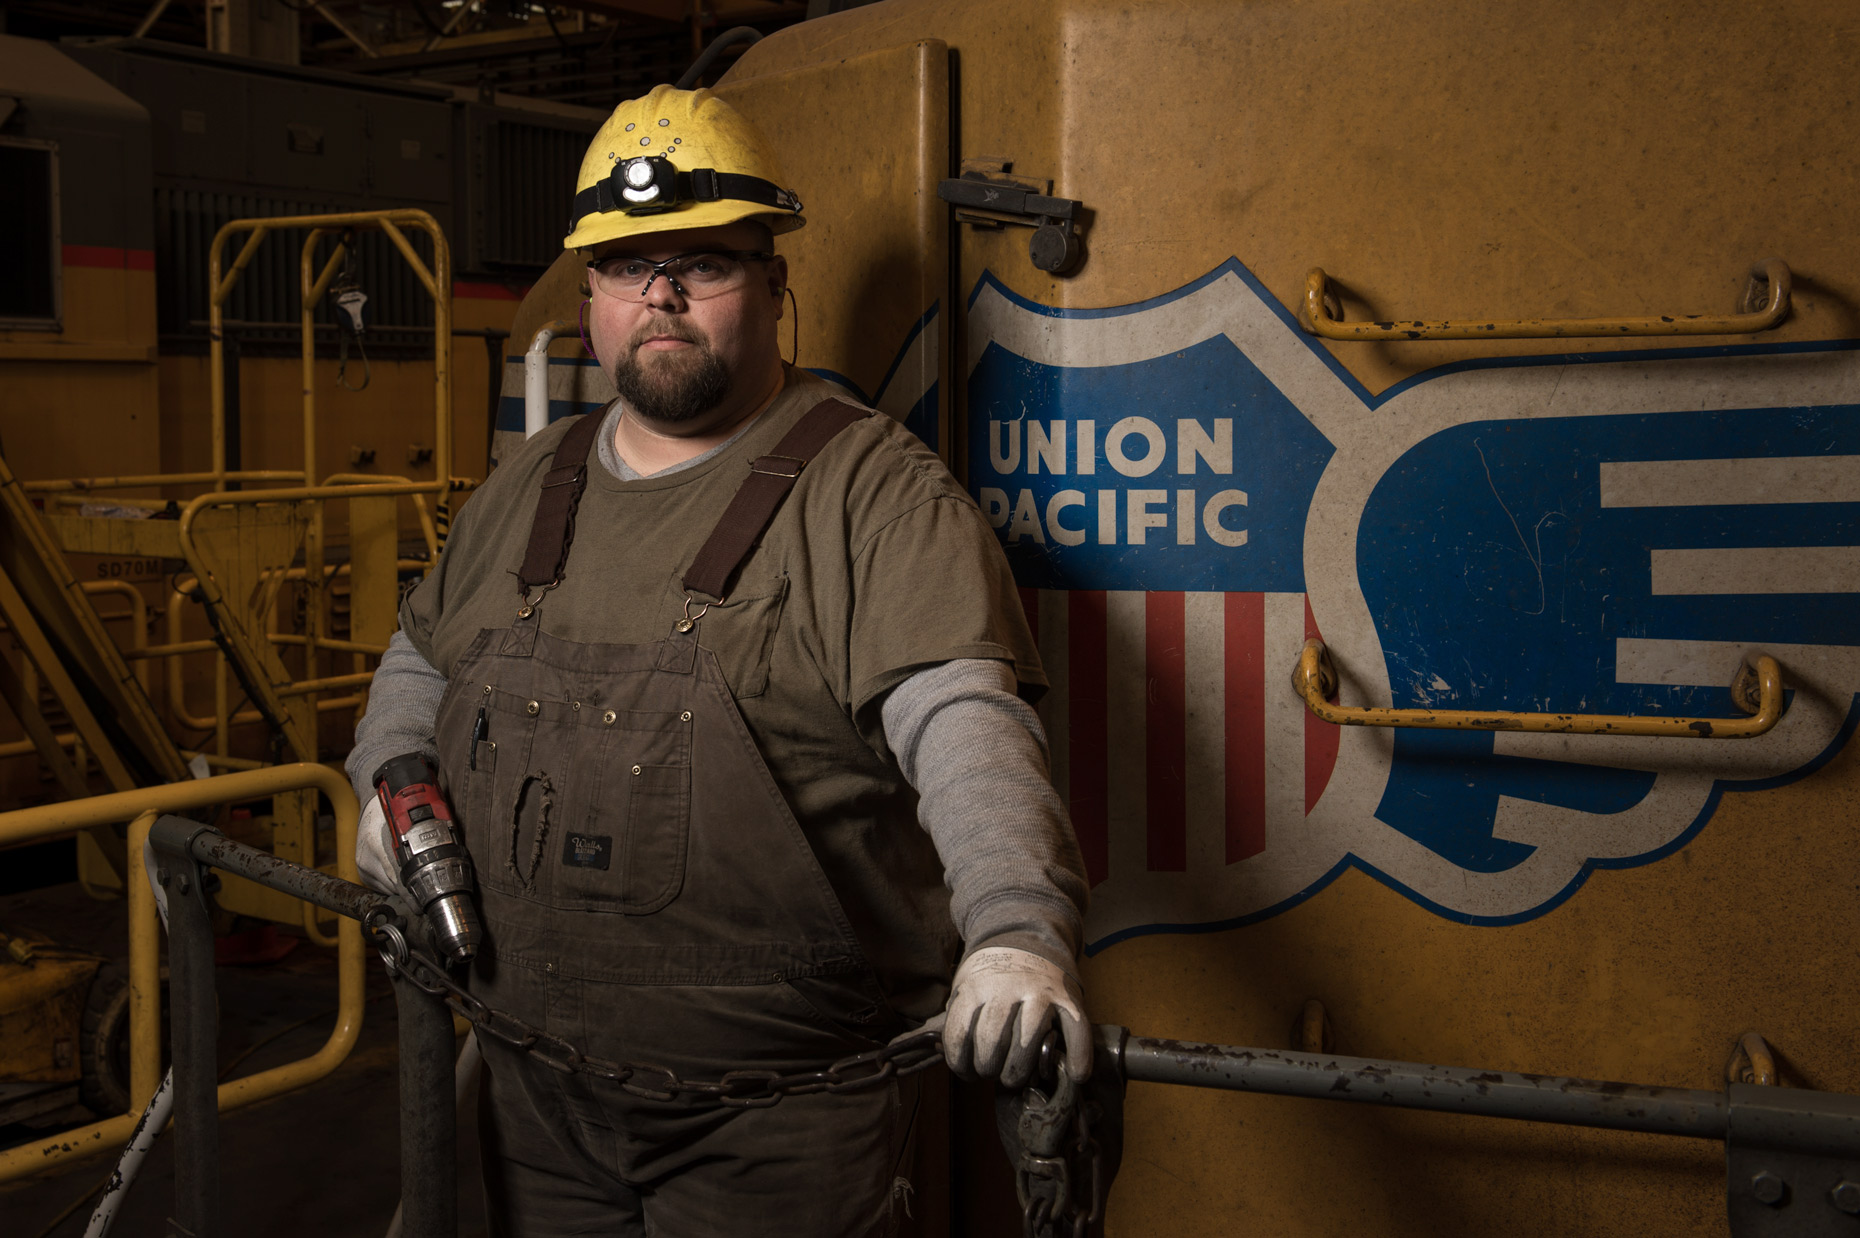 Railroad worker for Union Pacific Railroad photographed by Kevin Brown.